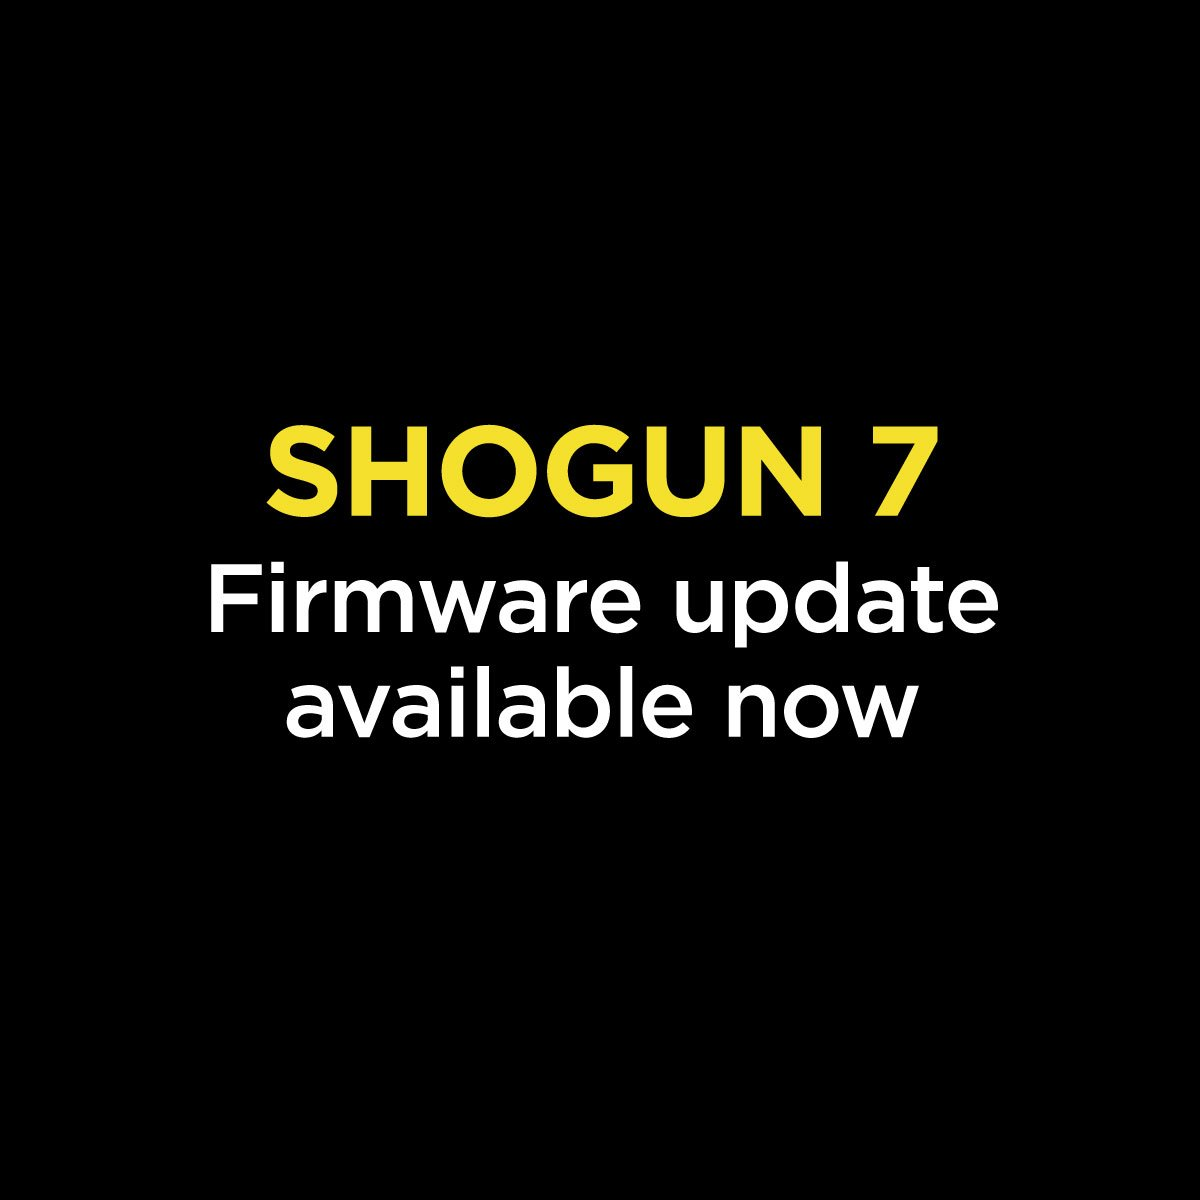 RT @AtomosGlobal: Released today! AtomOS 10.3 for Shogun 7 brings 3000nit peak brightness and Dolby Vision live HDR output. Download now ht…